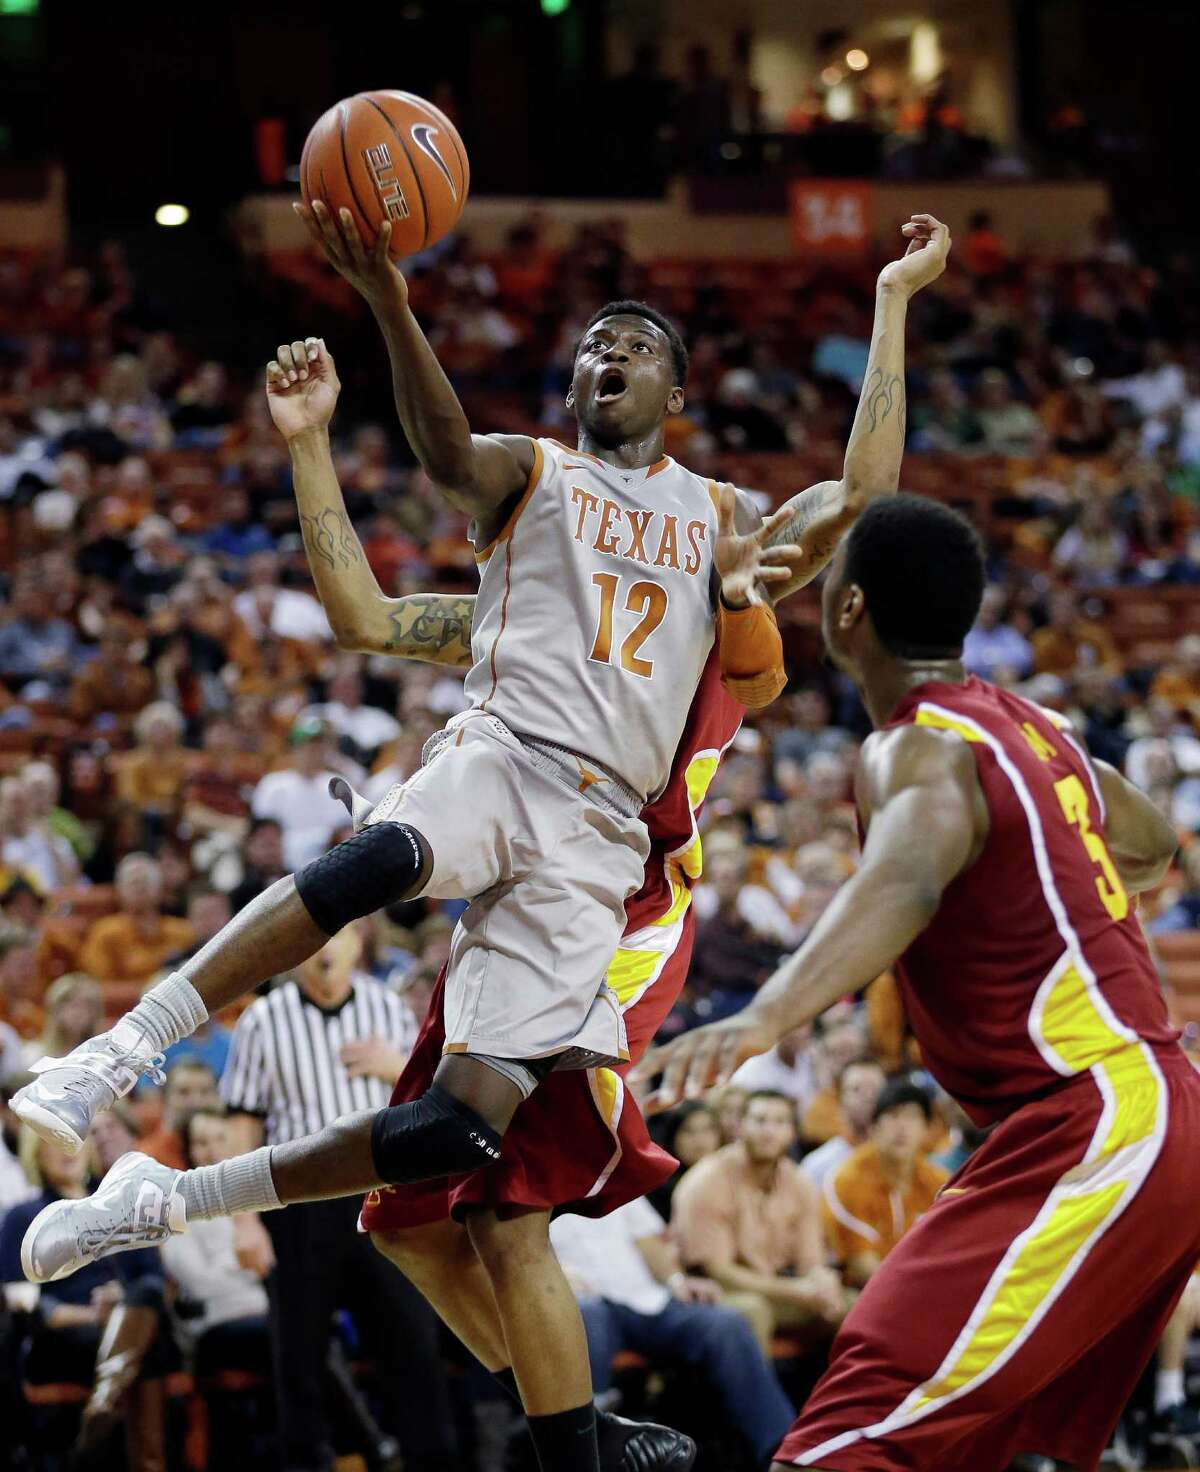 Texas' Myck Kabongo (12) shoots over Iowa State's Melvin Ejim (3) during the first half of an NCAA college basketball game, Wednesday, Feb. 13, 2013, in Austin, Texas. Kabongo returned for his first game of the season after a 23-game NCAA suspension. (AP Photo/Eric Gay)